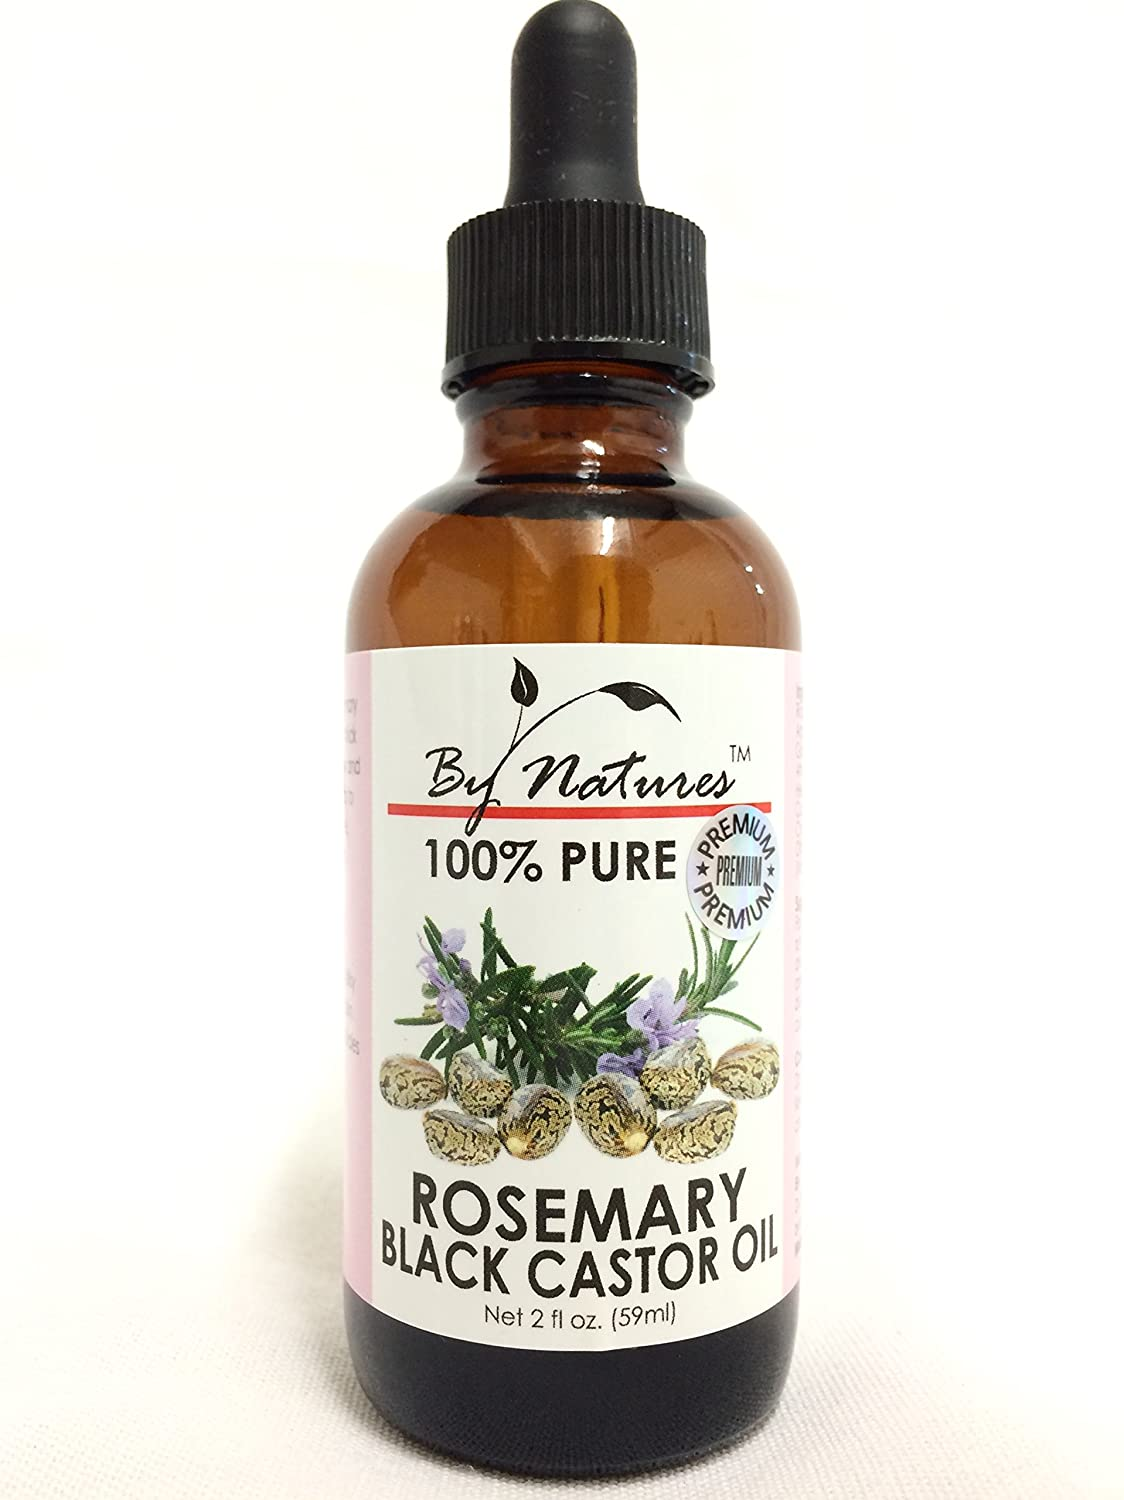 (2 Oz) By Natures 100% Pure: Rosemary Black Castor Oil